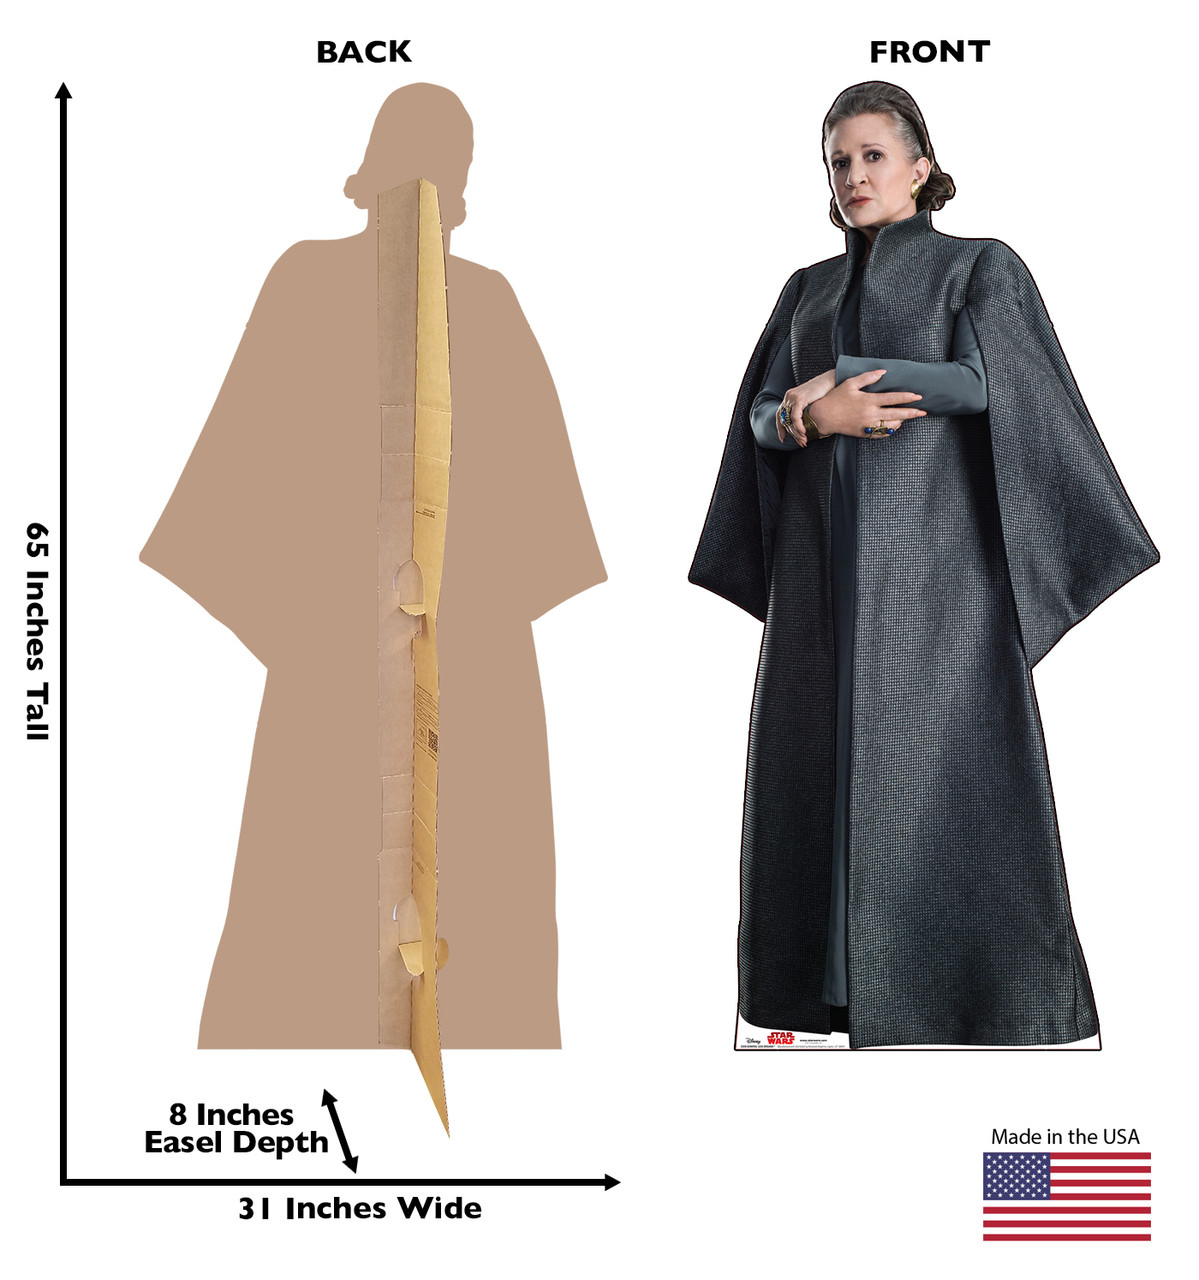 General Leia Organa - Star Wars: The Last Jedi Life-Size Cardboard Cutout 3 with back and front dimensions